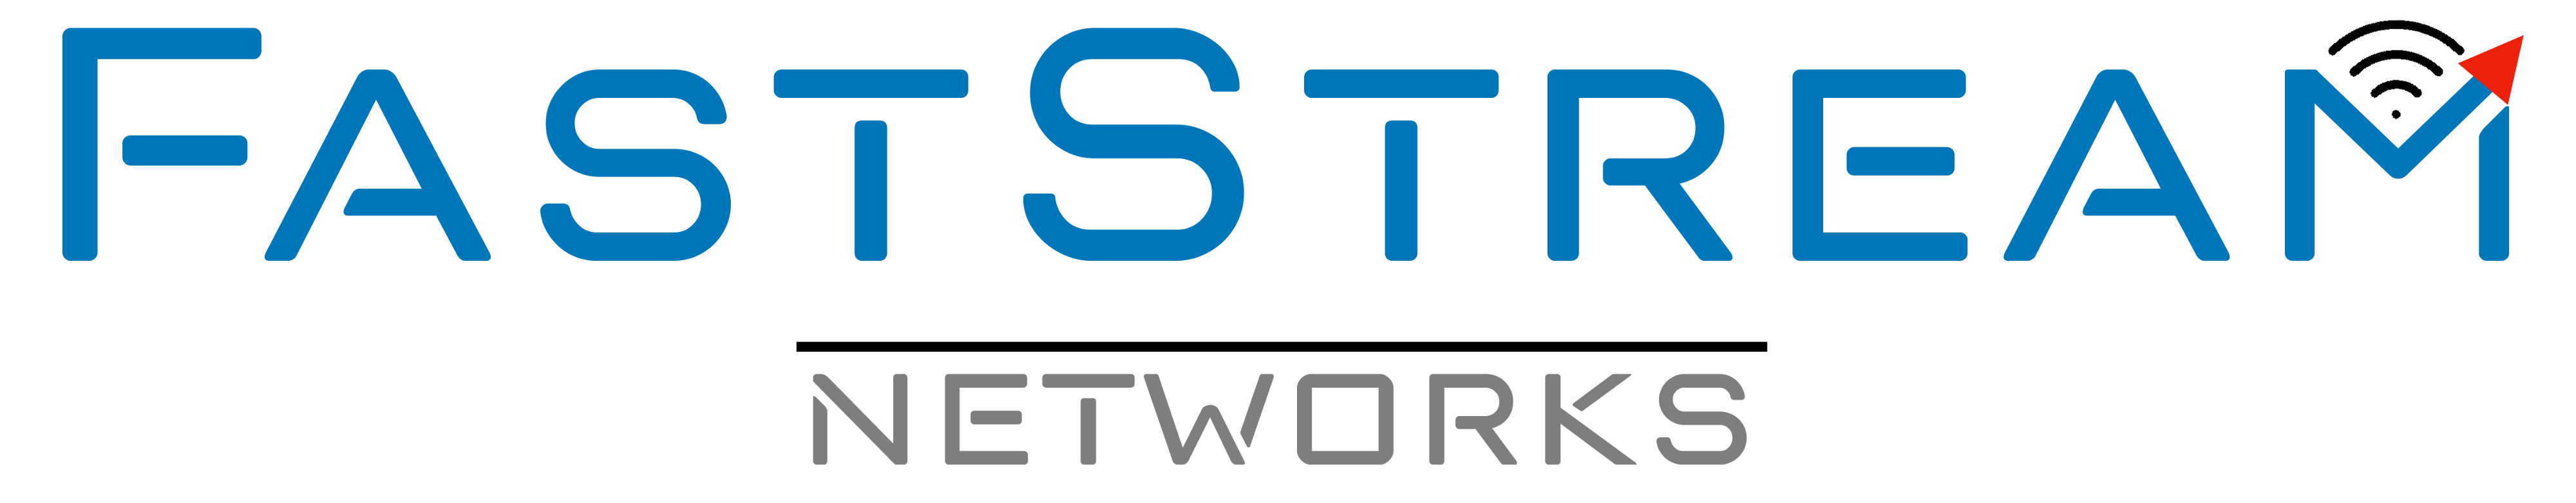 FastStream Networks High Speed Internet